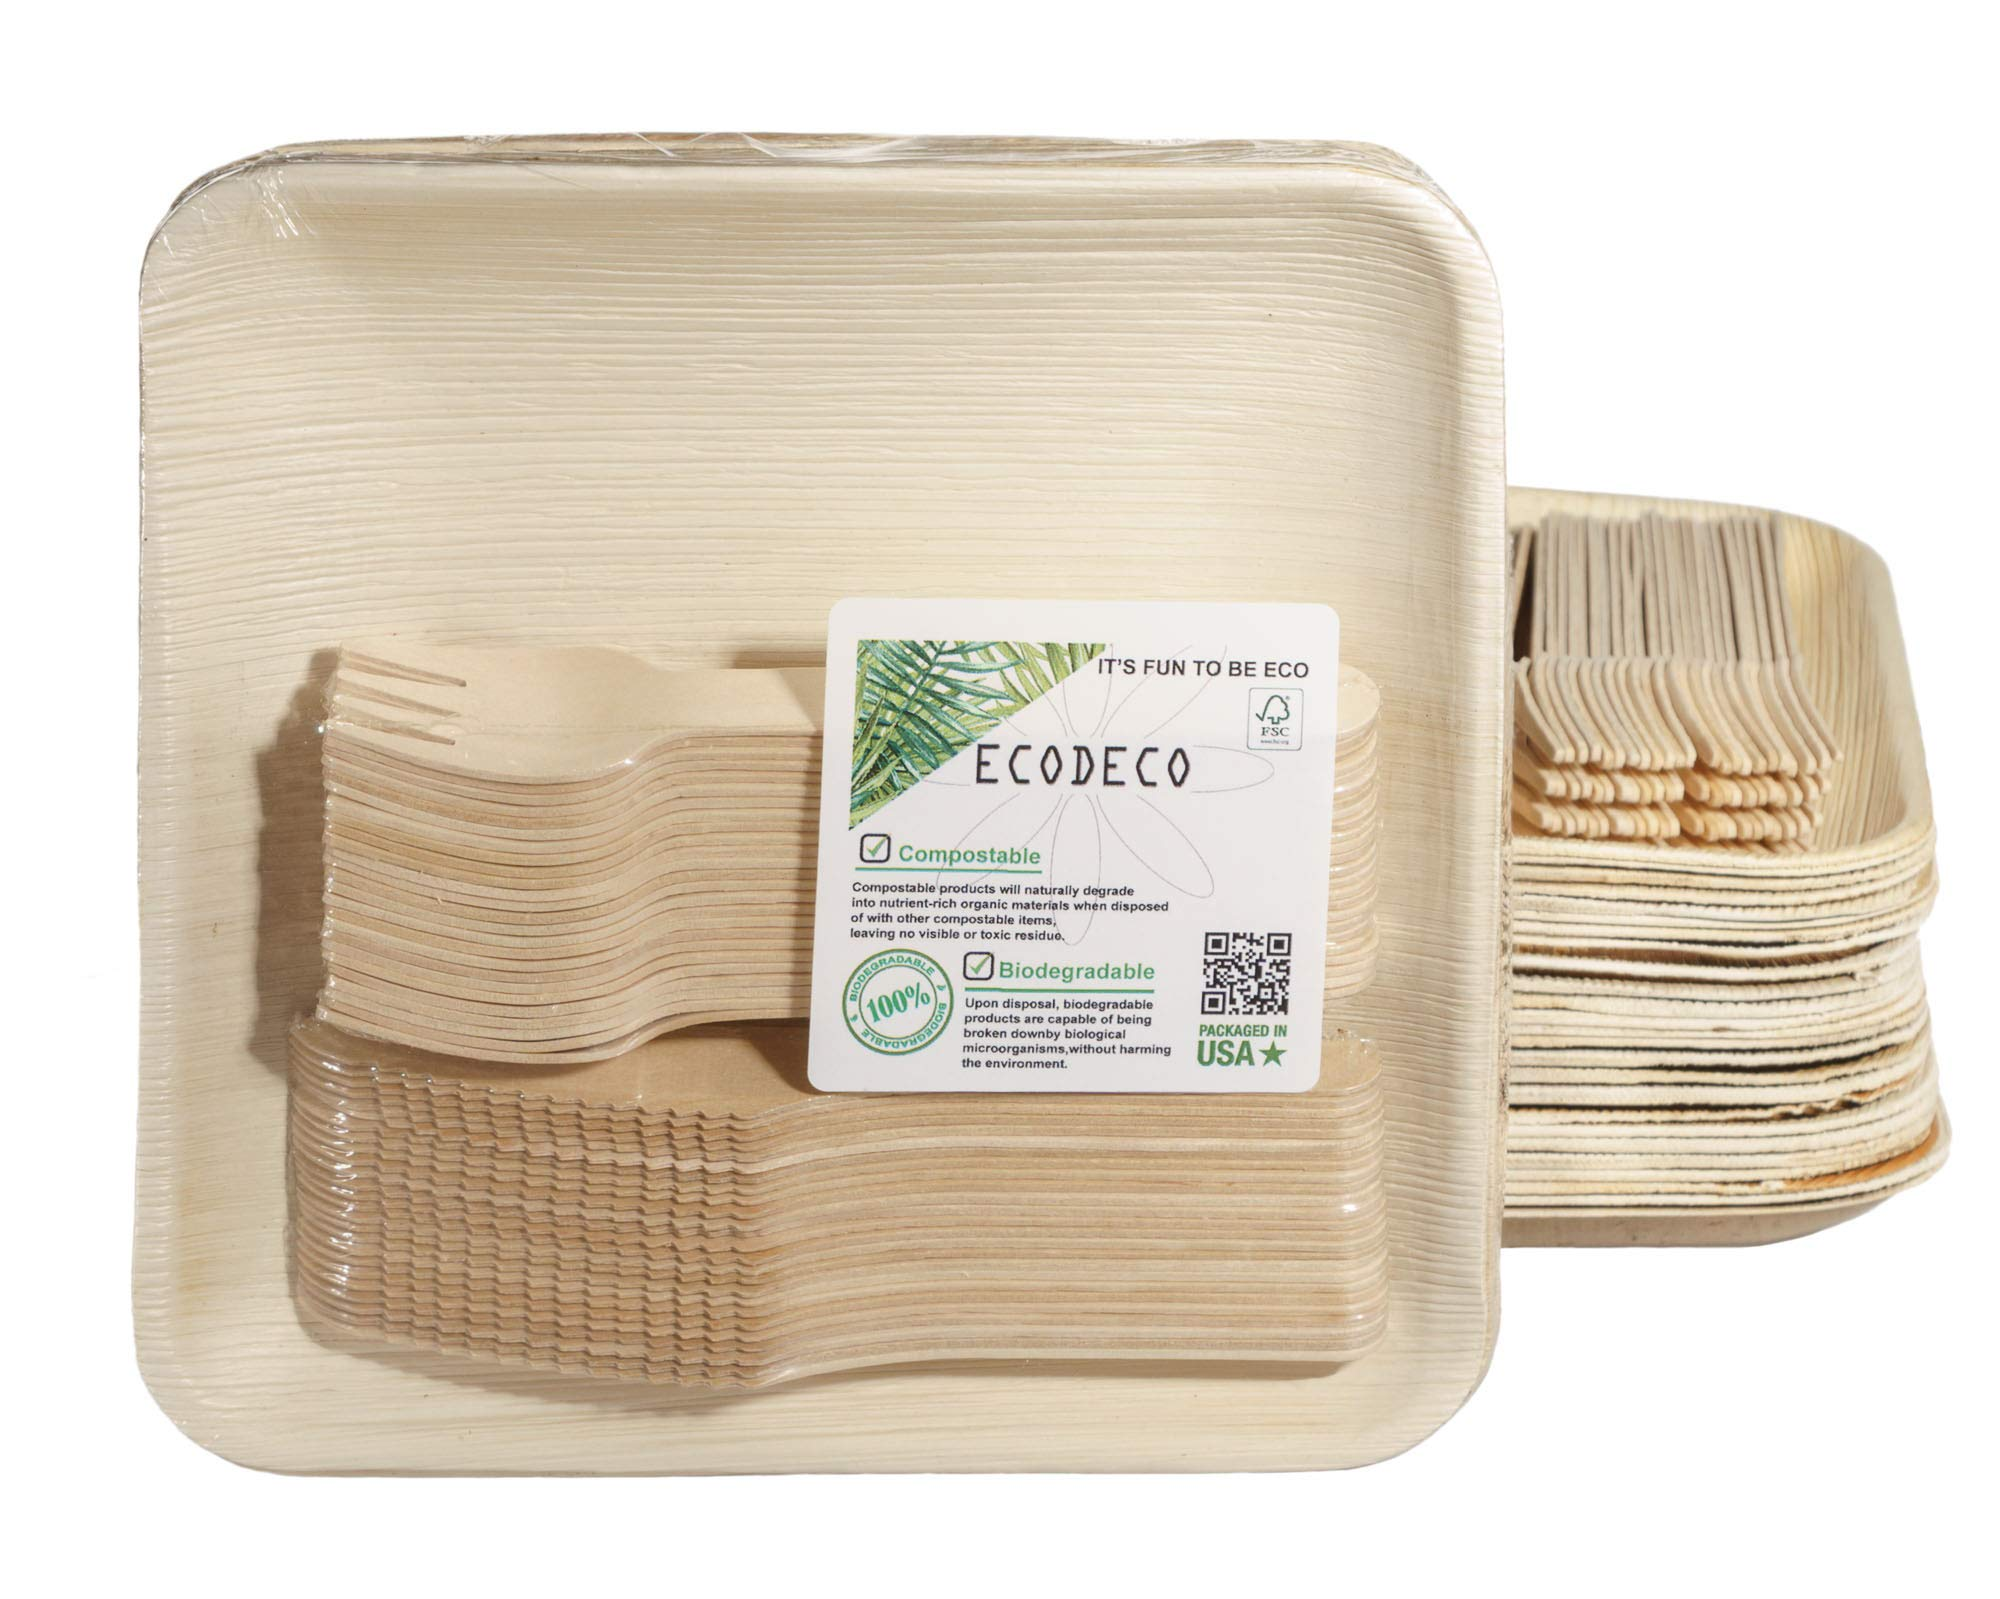 150 PCS Eco Friendly Disposable Dinnerware Set - 50 Palm Leaf Compostable 8'' Plates w/Wooden Cutlery - 50 Forks, 50 Knives for Party